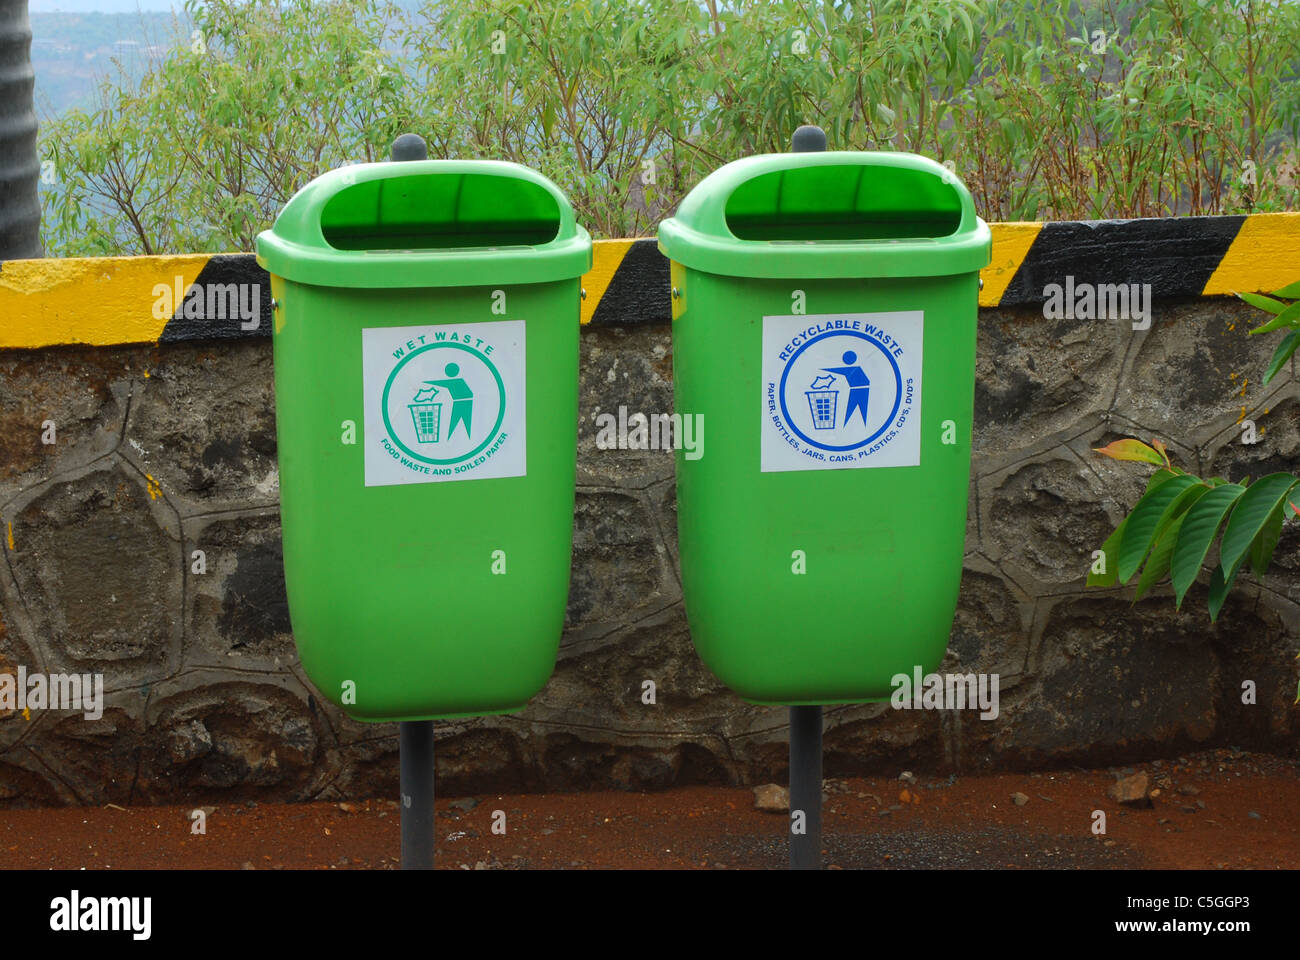 recyclable waste - Stock Image